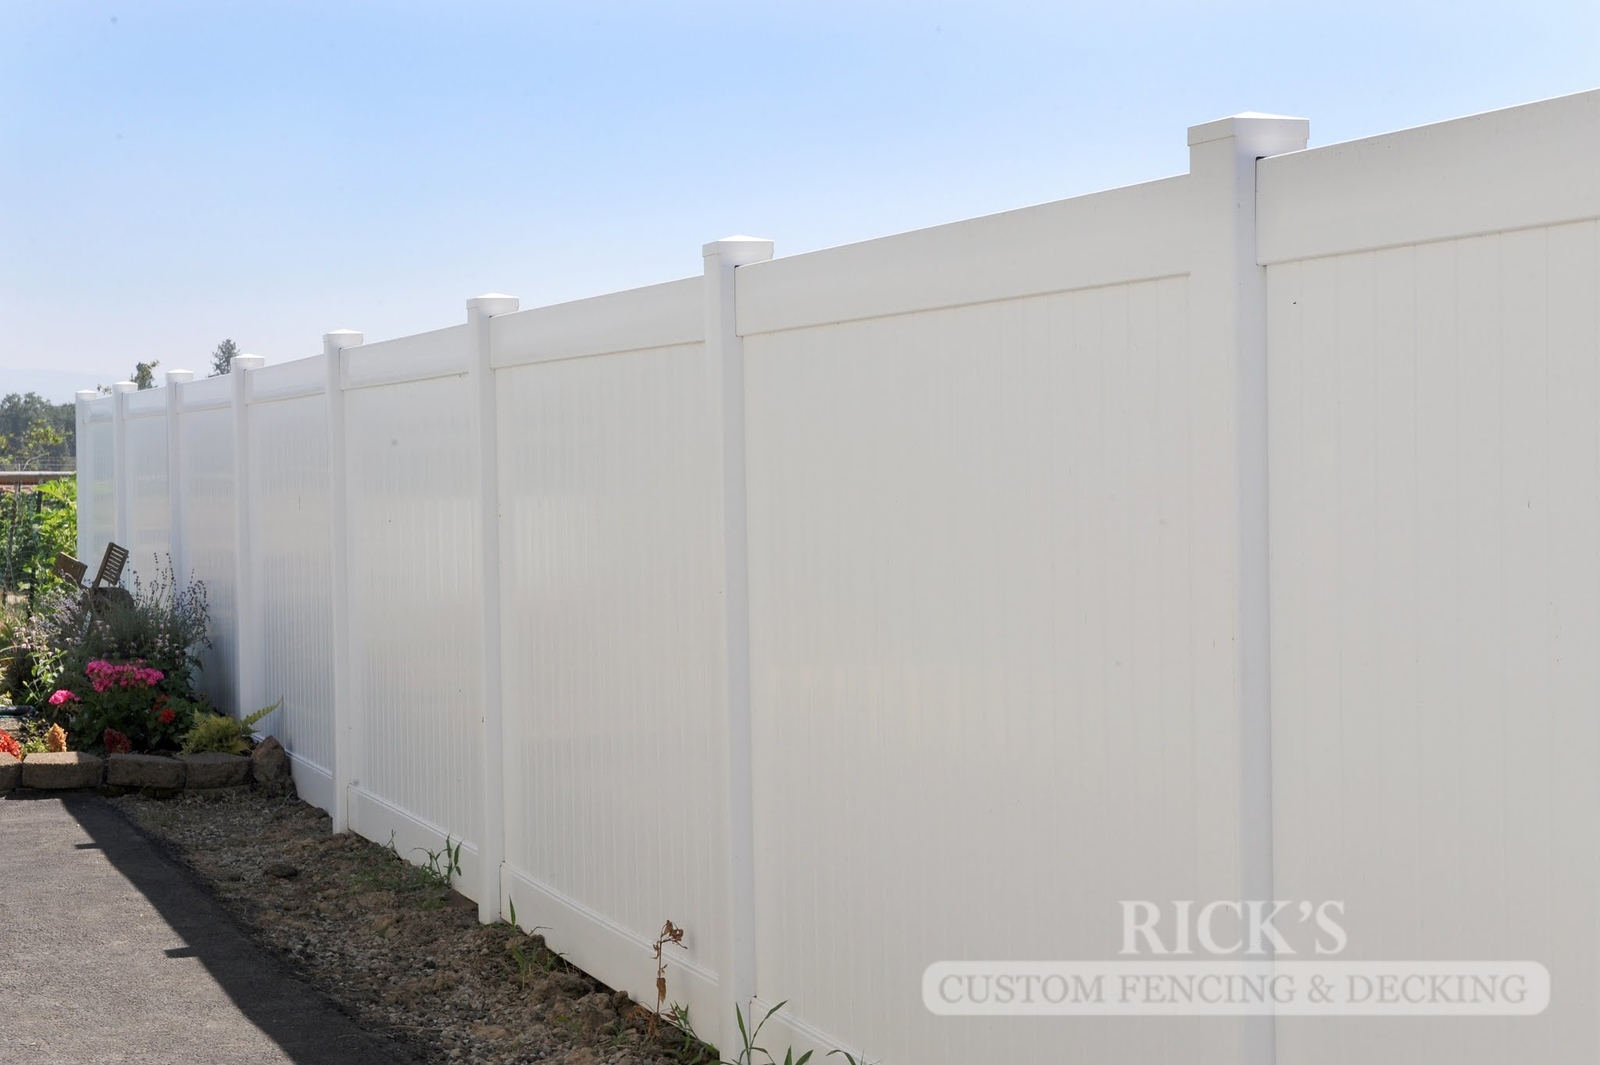 3011 - Vinyl Privacy Fencing